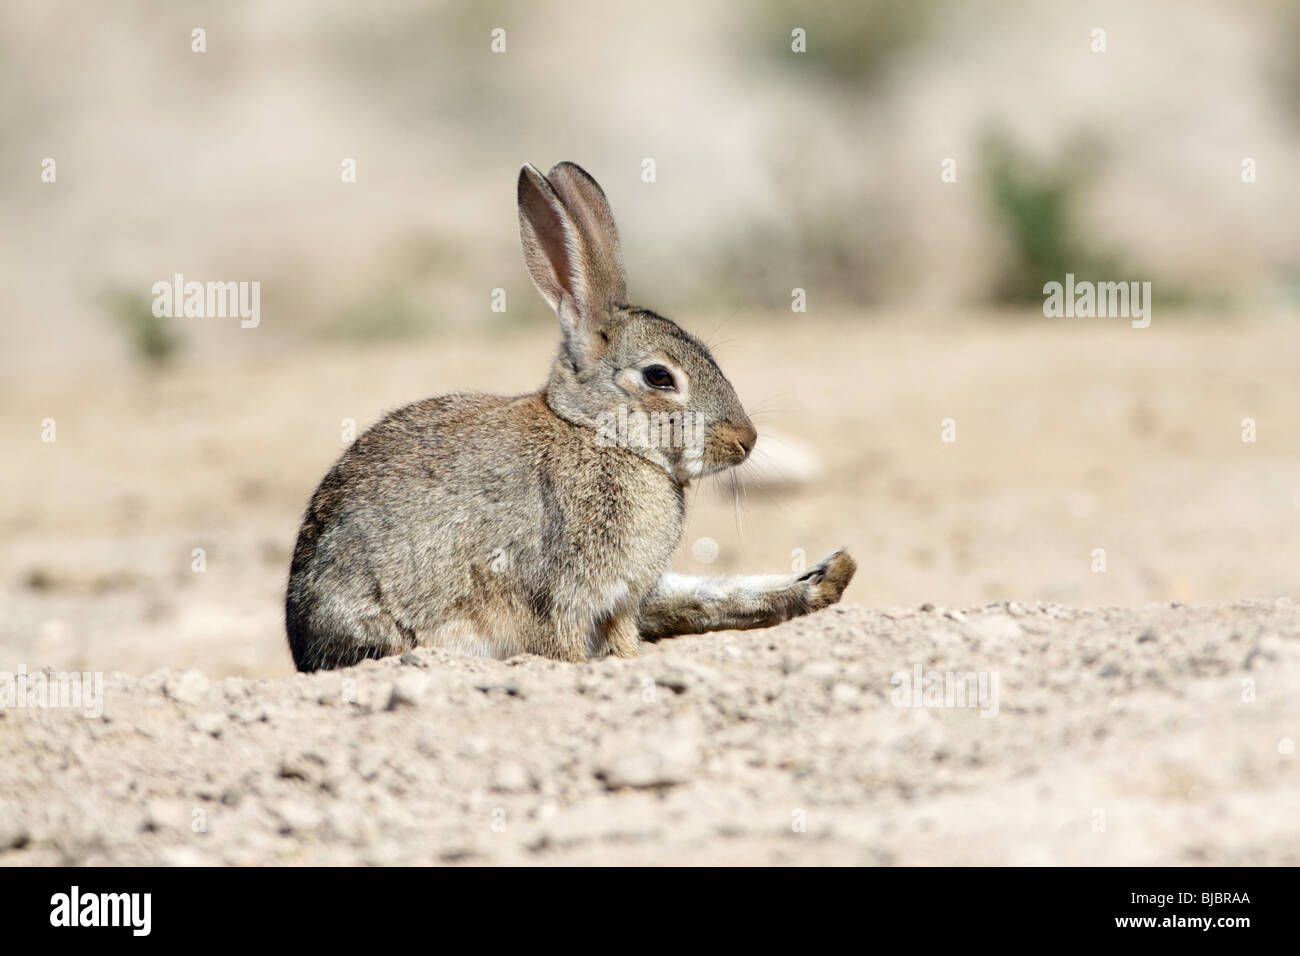 Wild Rabbit (Oryctolagus cuniculus), stretching its hind leg, Alentejo, Portugal - Stock Image